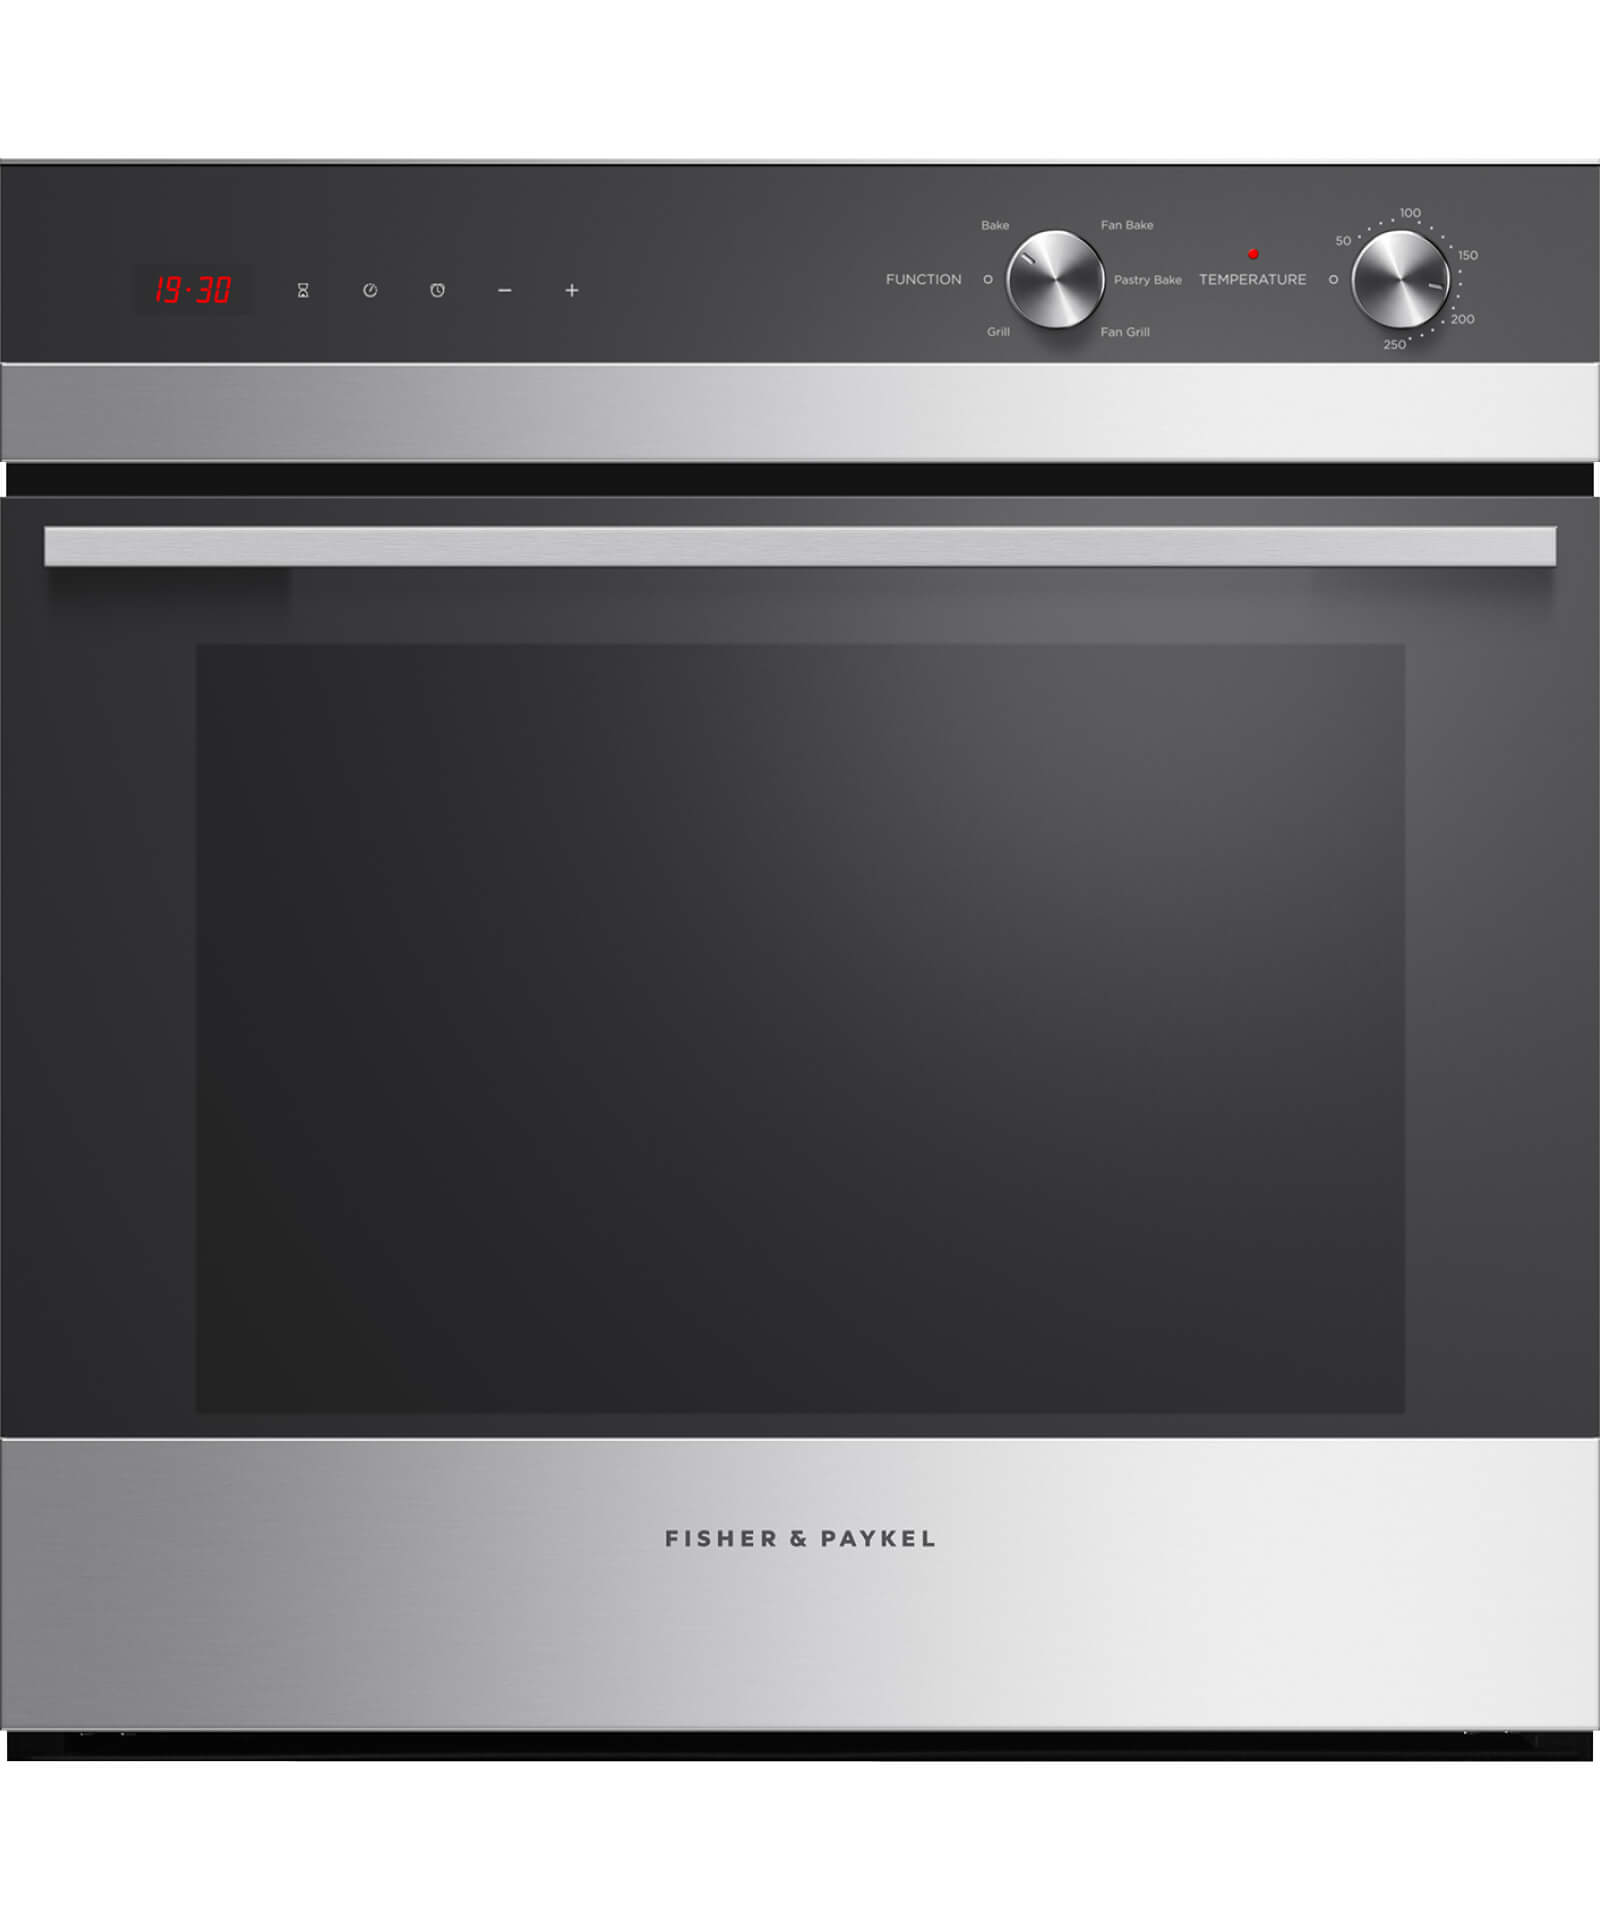 ob60scvmx1 60cm single 5 function built in oven 85l gross capacity rh fisherpaykel com fisher and paykel multifunction oven user guide fisher and paykel saffron oven user manual